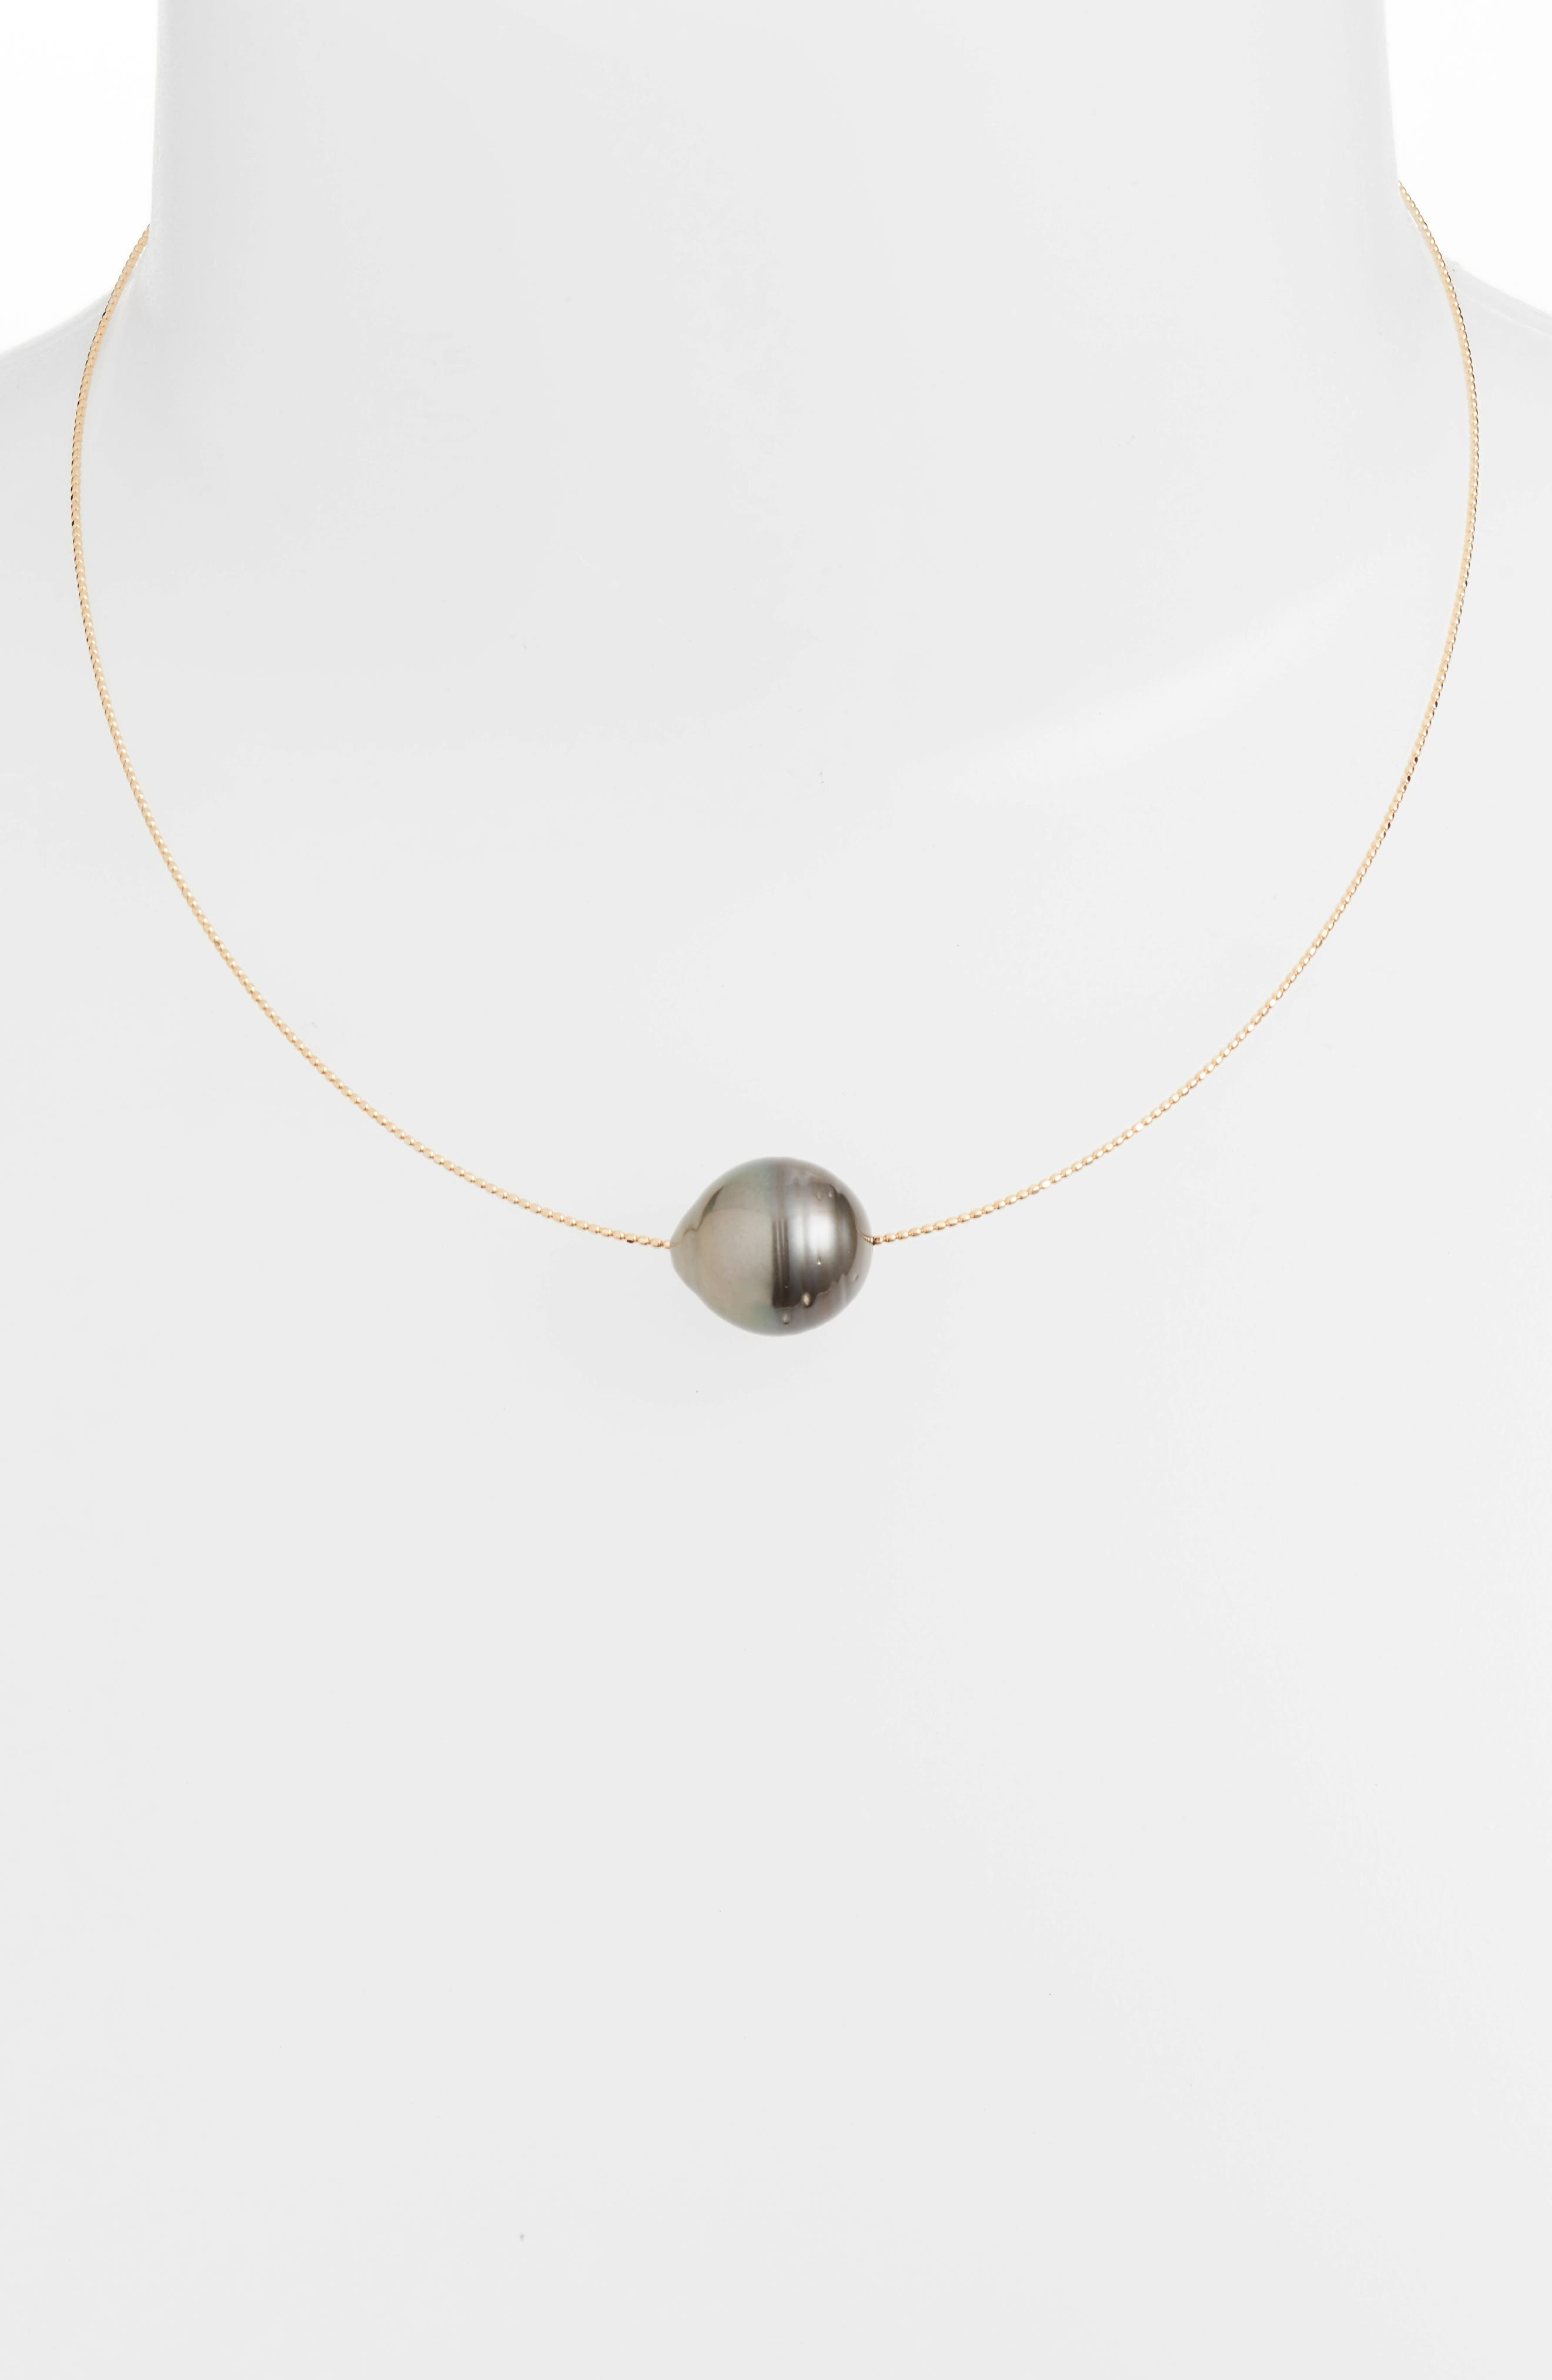 South Sea Collar Necklace with Genuine Pearl,                             Alternate thumbnail 2, color,                             Yellow Gold/ Black Pearl